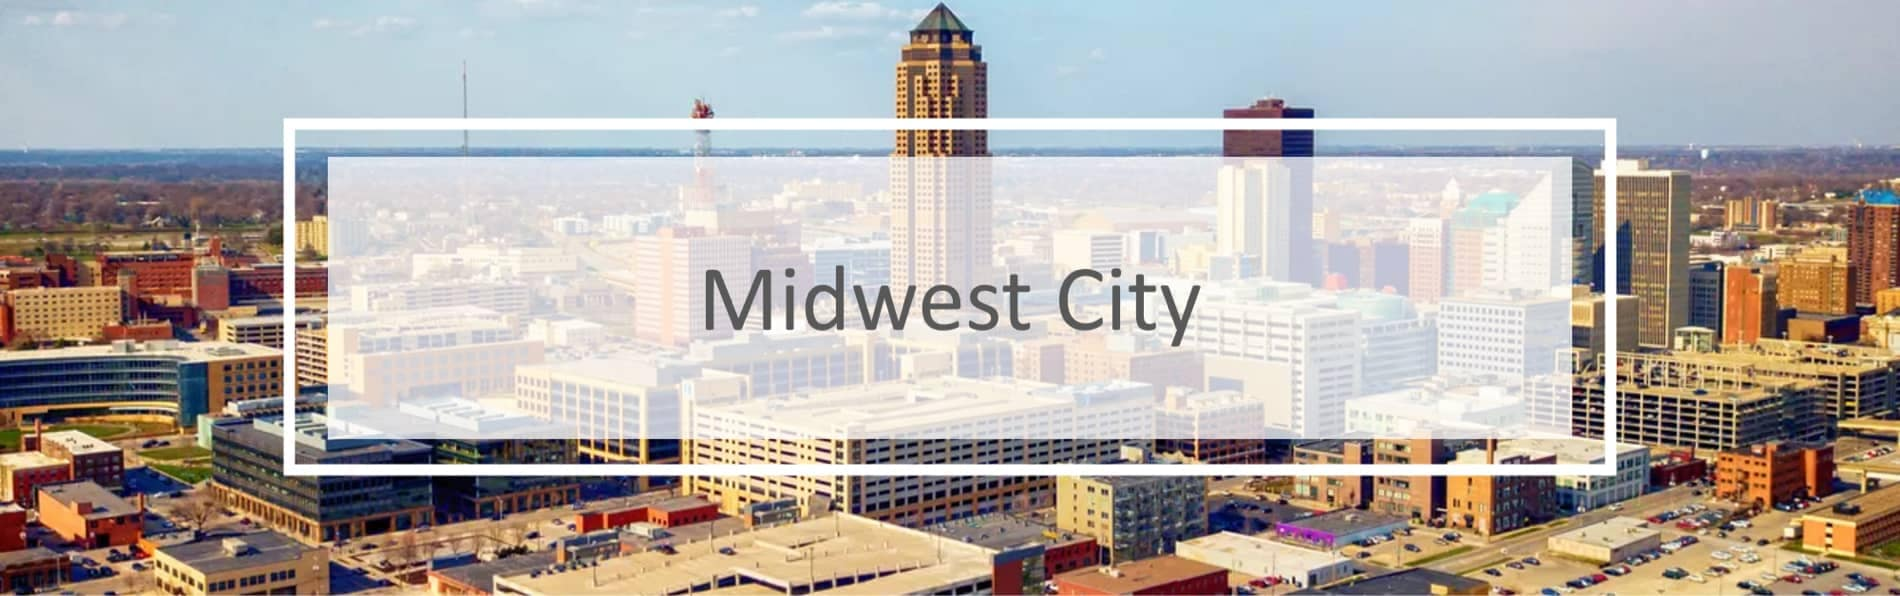 Midwest City Header